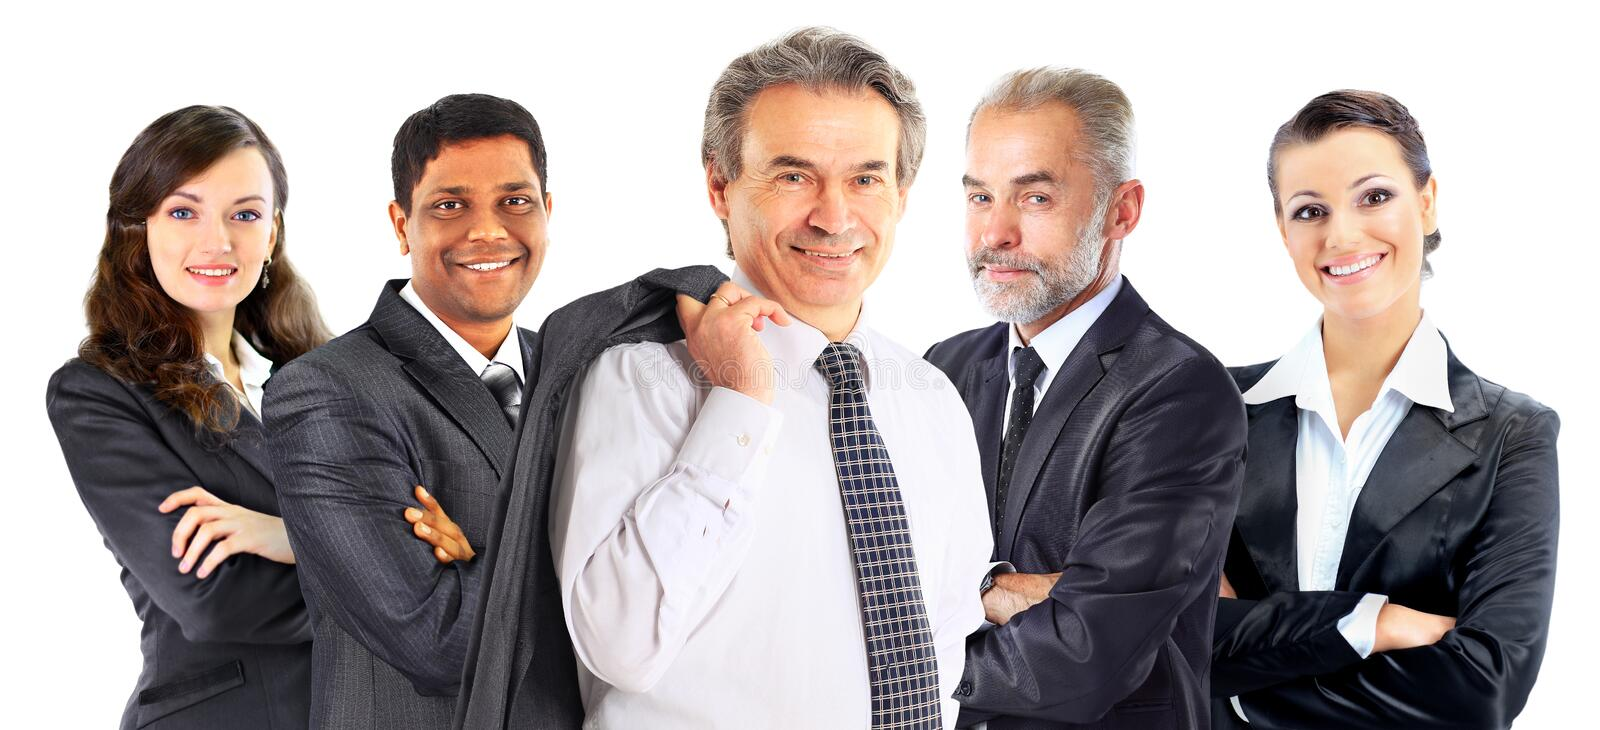 Successful group of business people stock images